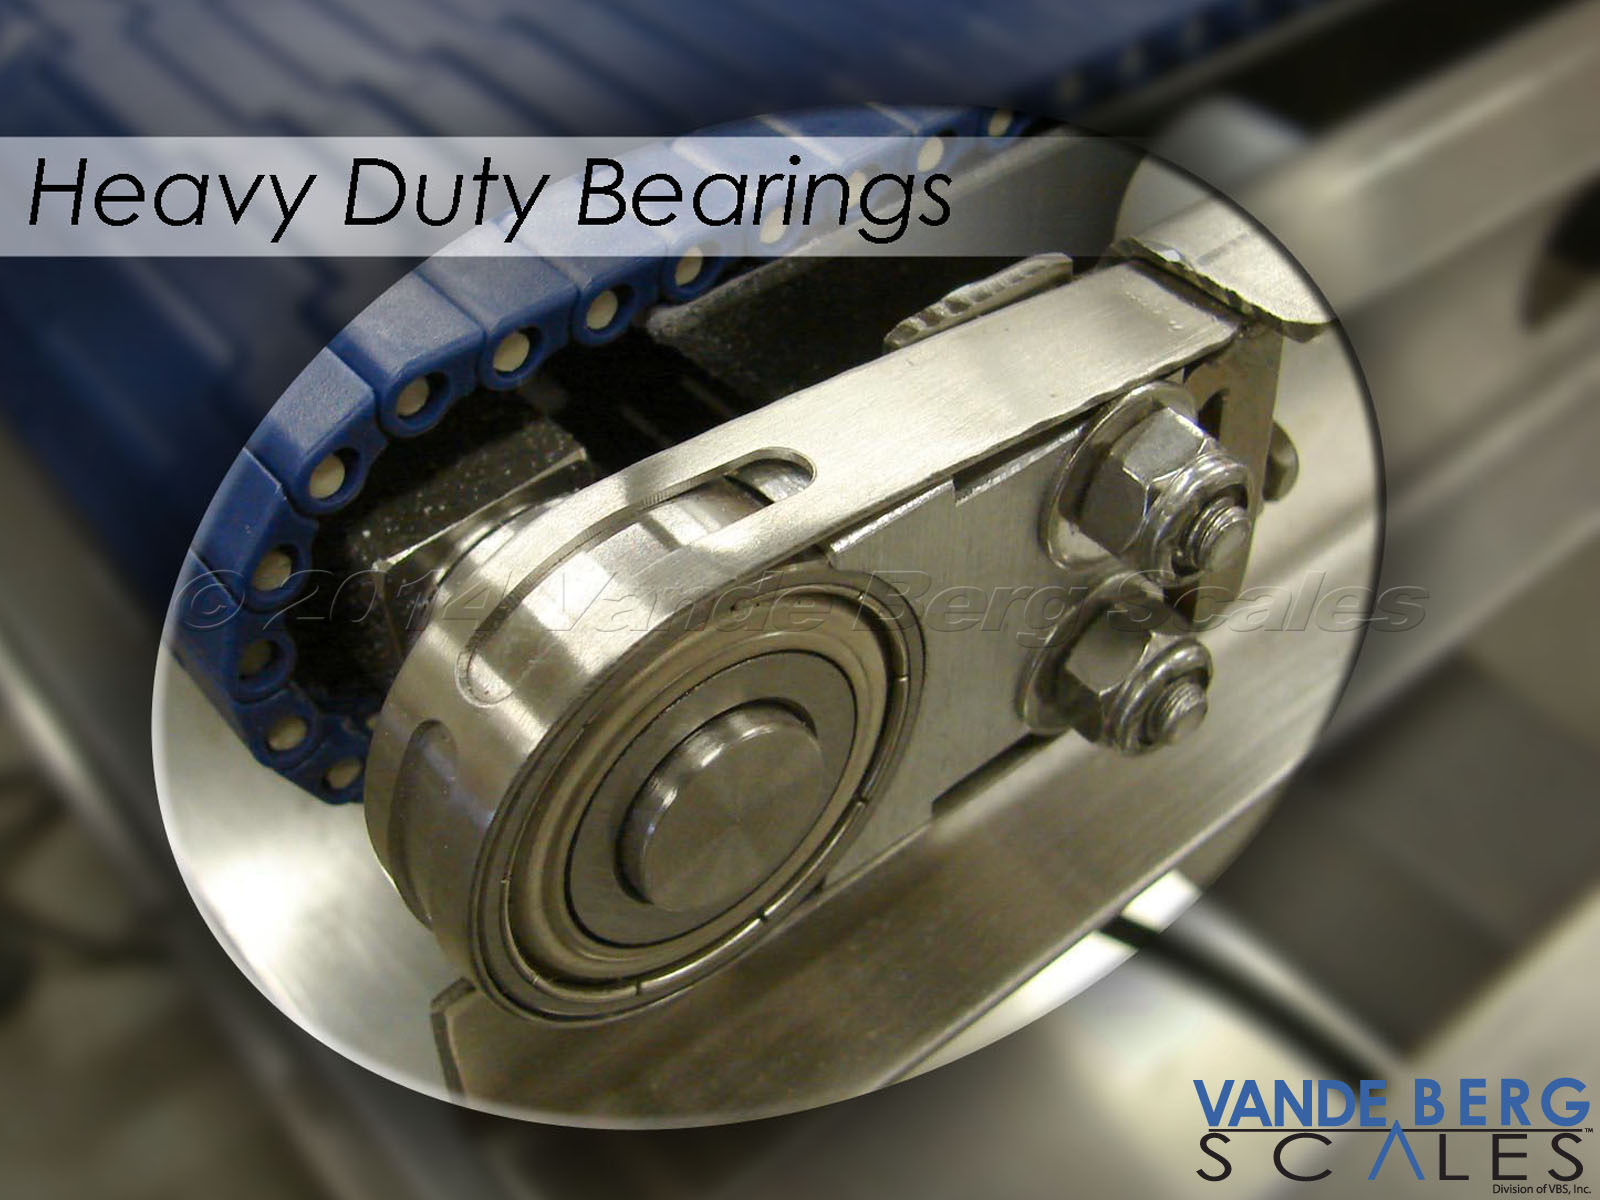 Heavy-duty bearings provide long service life